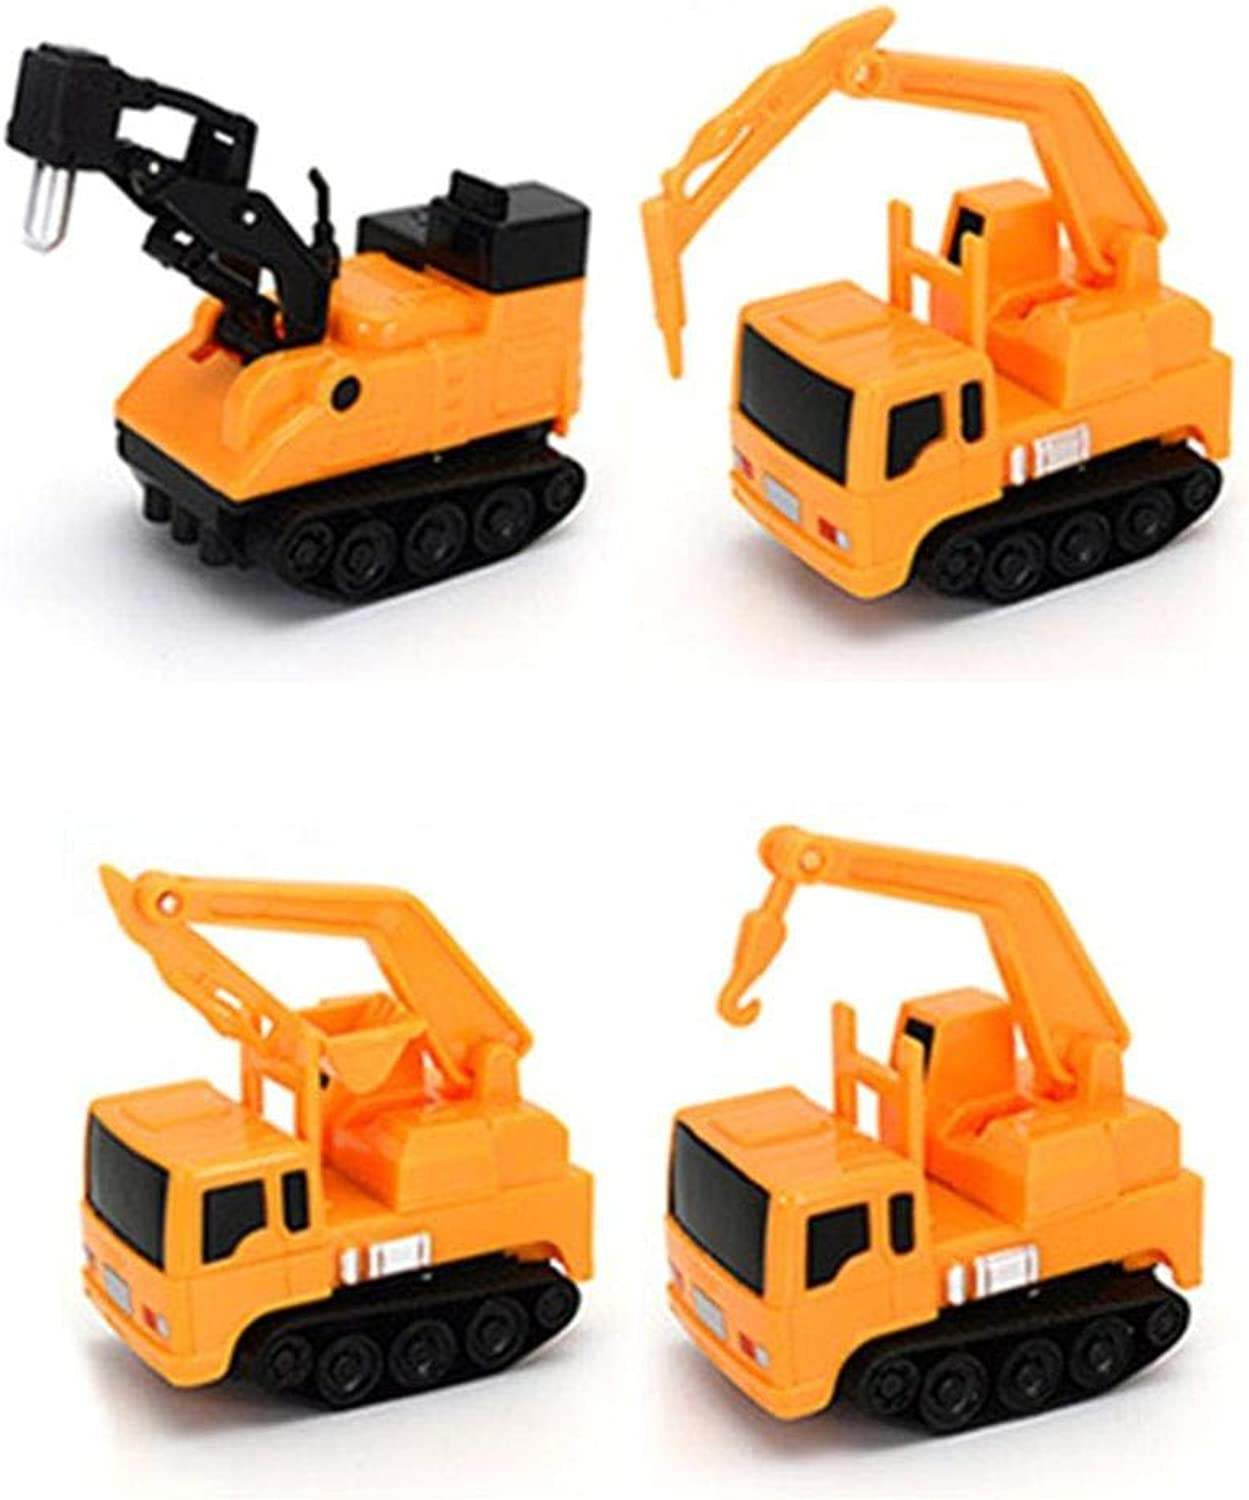 Generic Follow Any Drawn Line Magical Pen Inductive Toy Cars Trunks Yellow